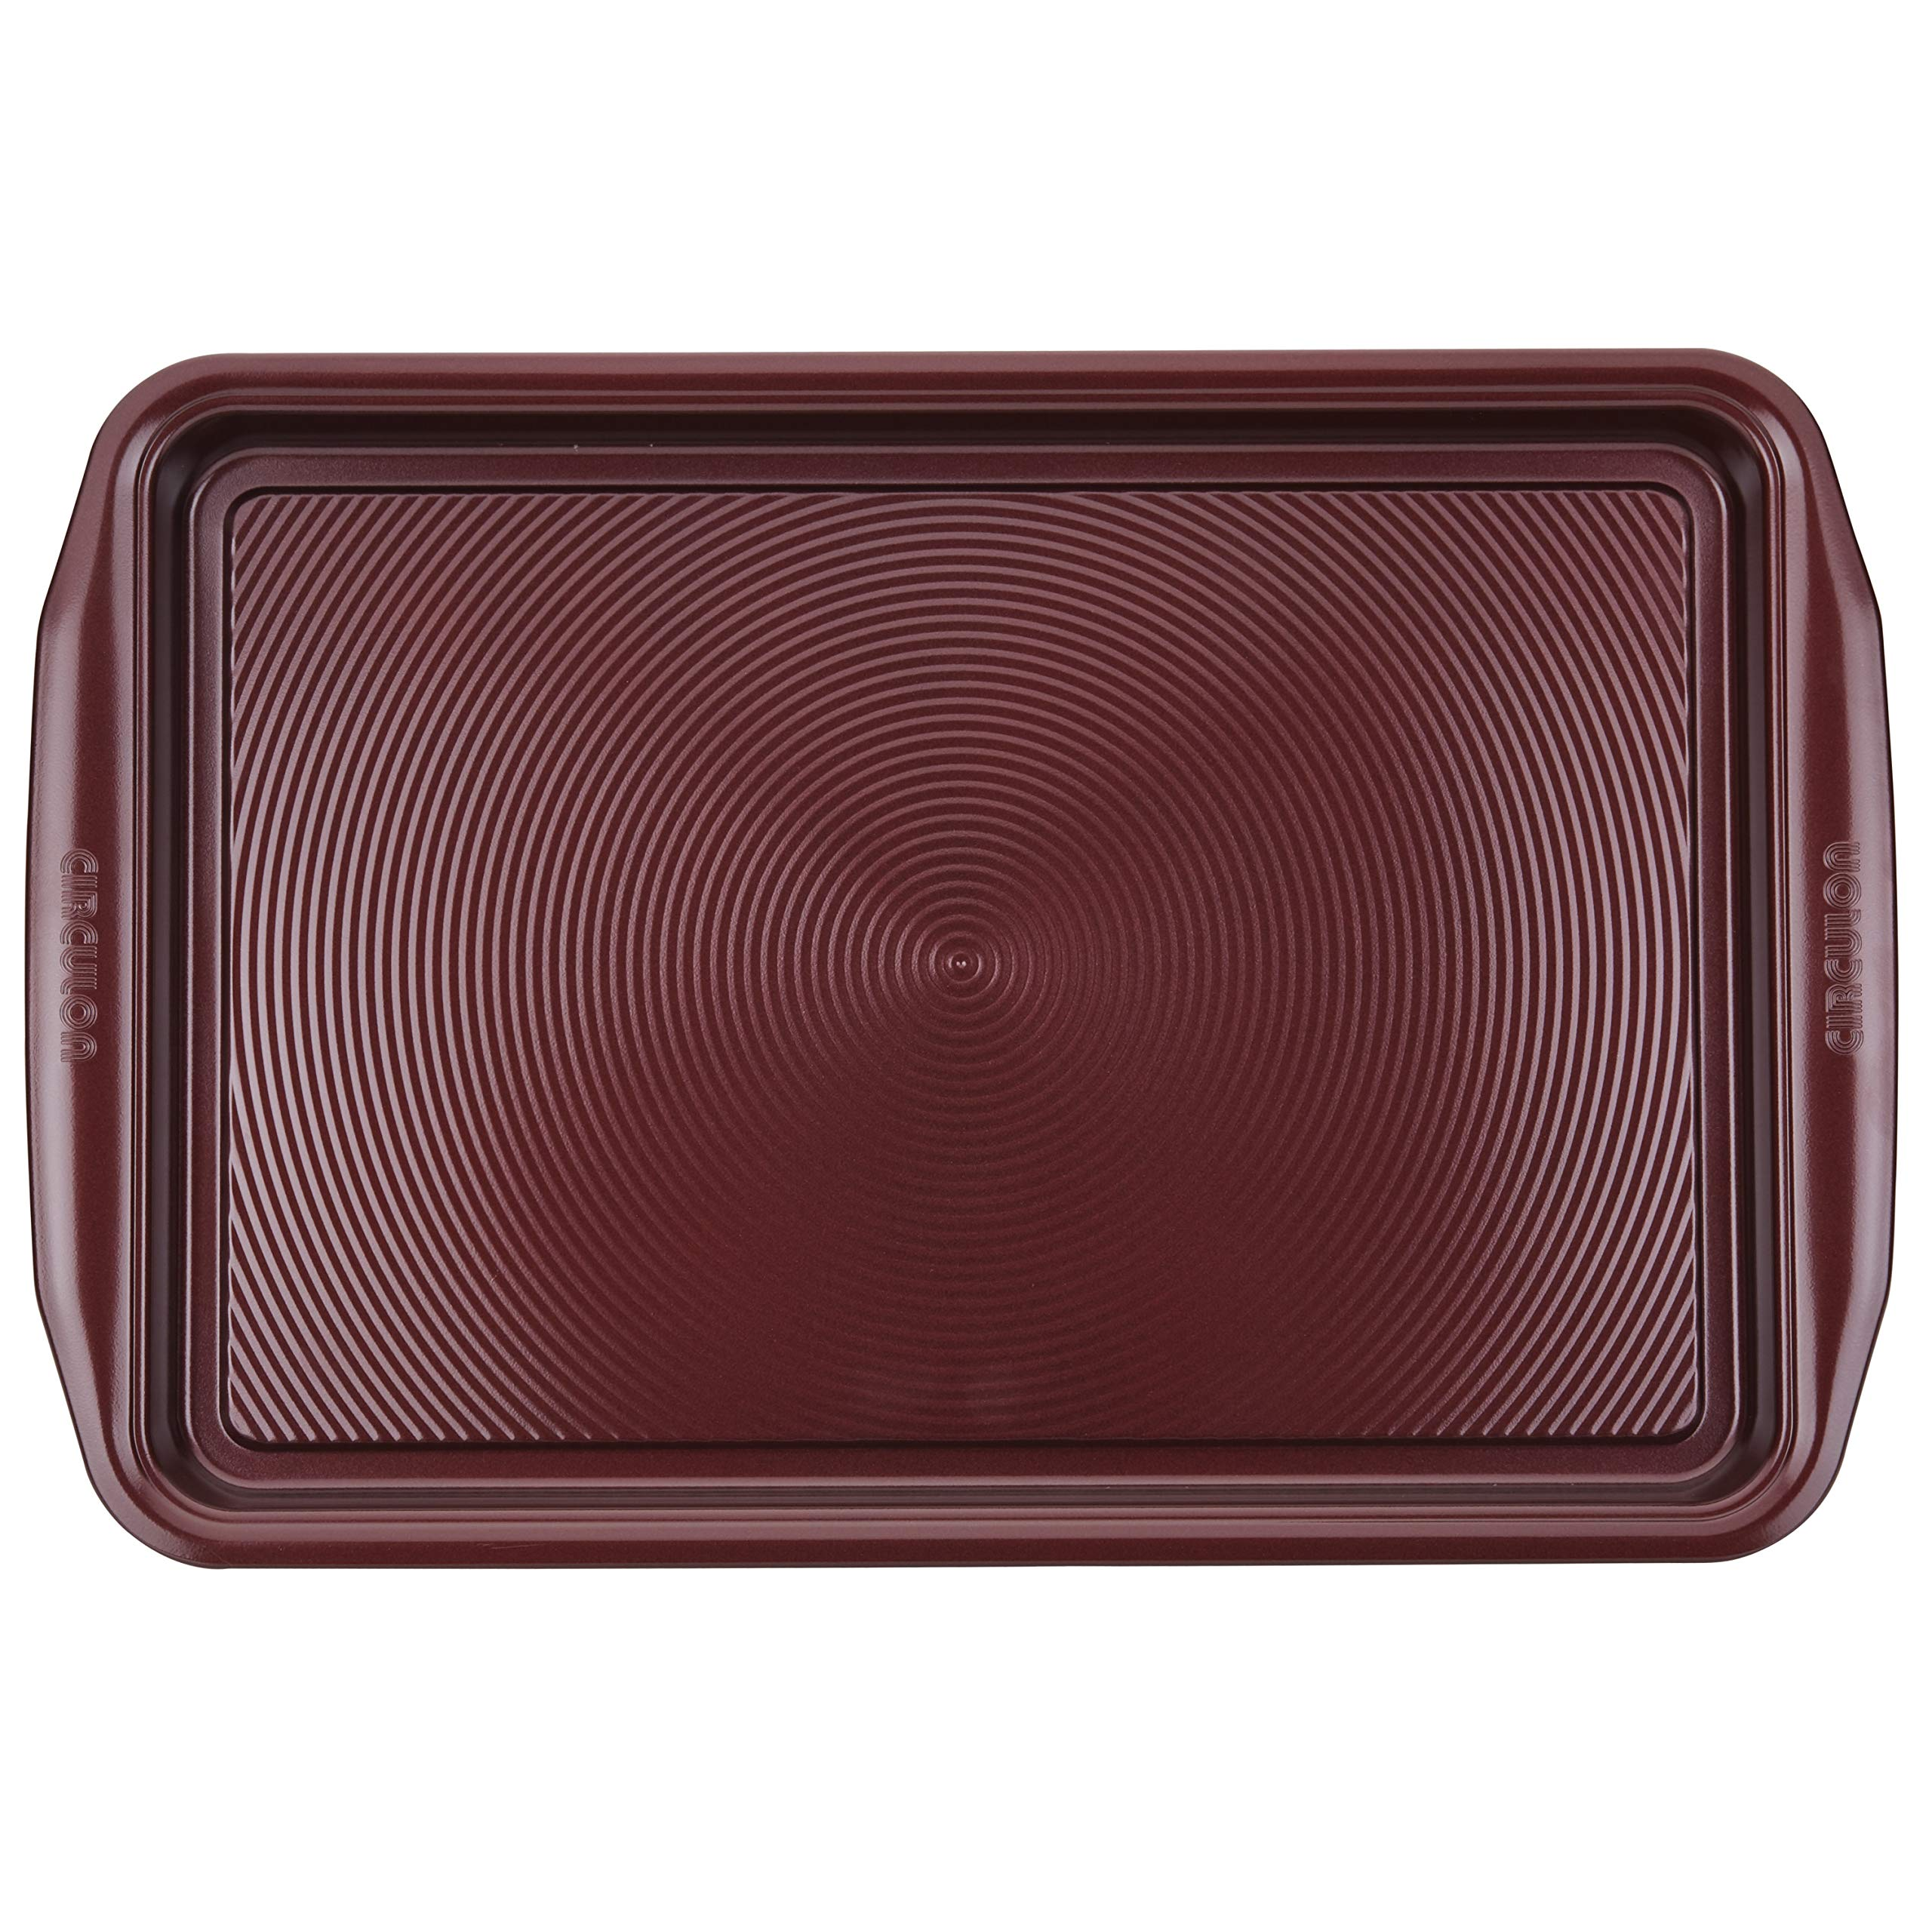 Circulon 47740 10-Piece Steel Bakeware Set, Merlot by Circulon (Image #9)